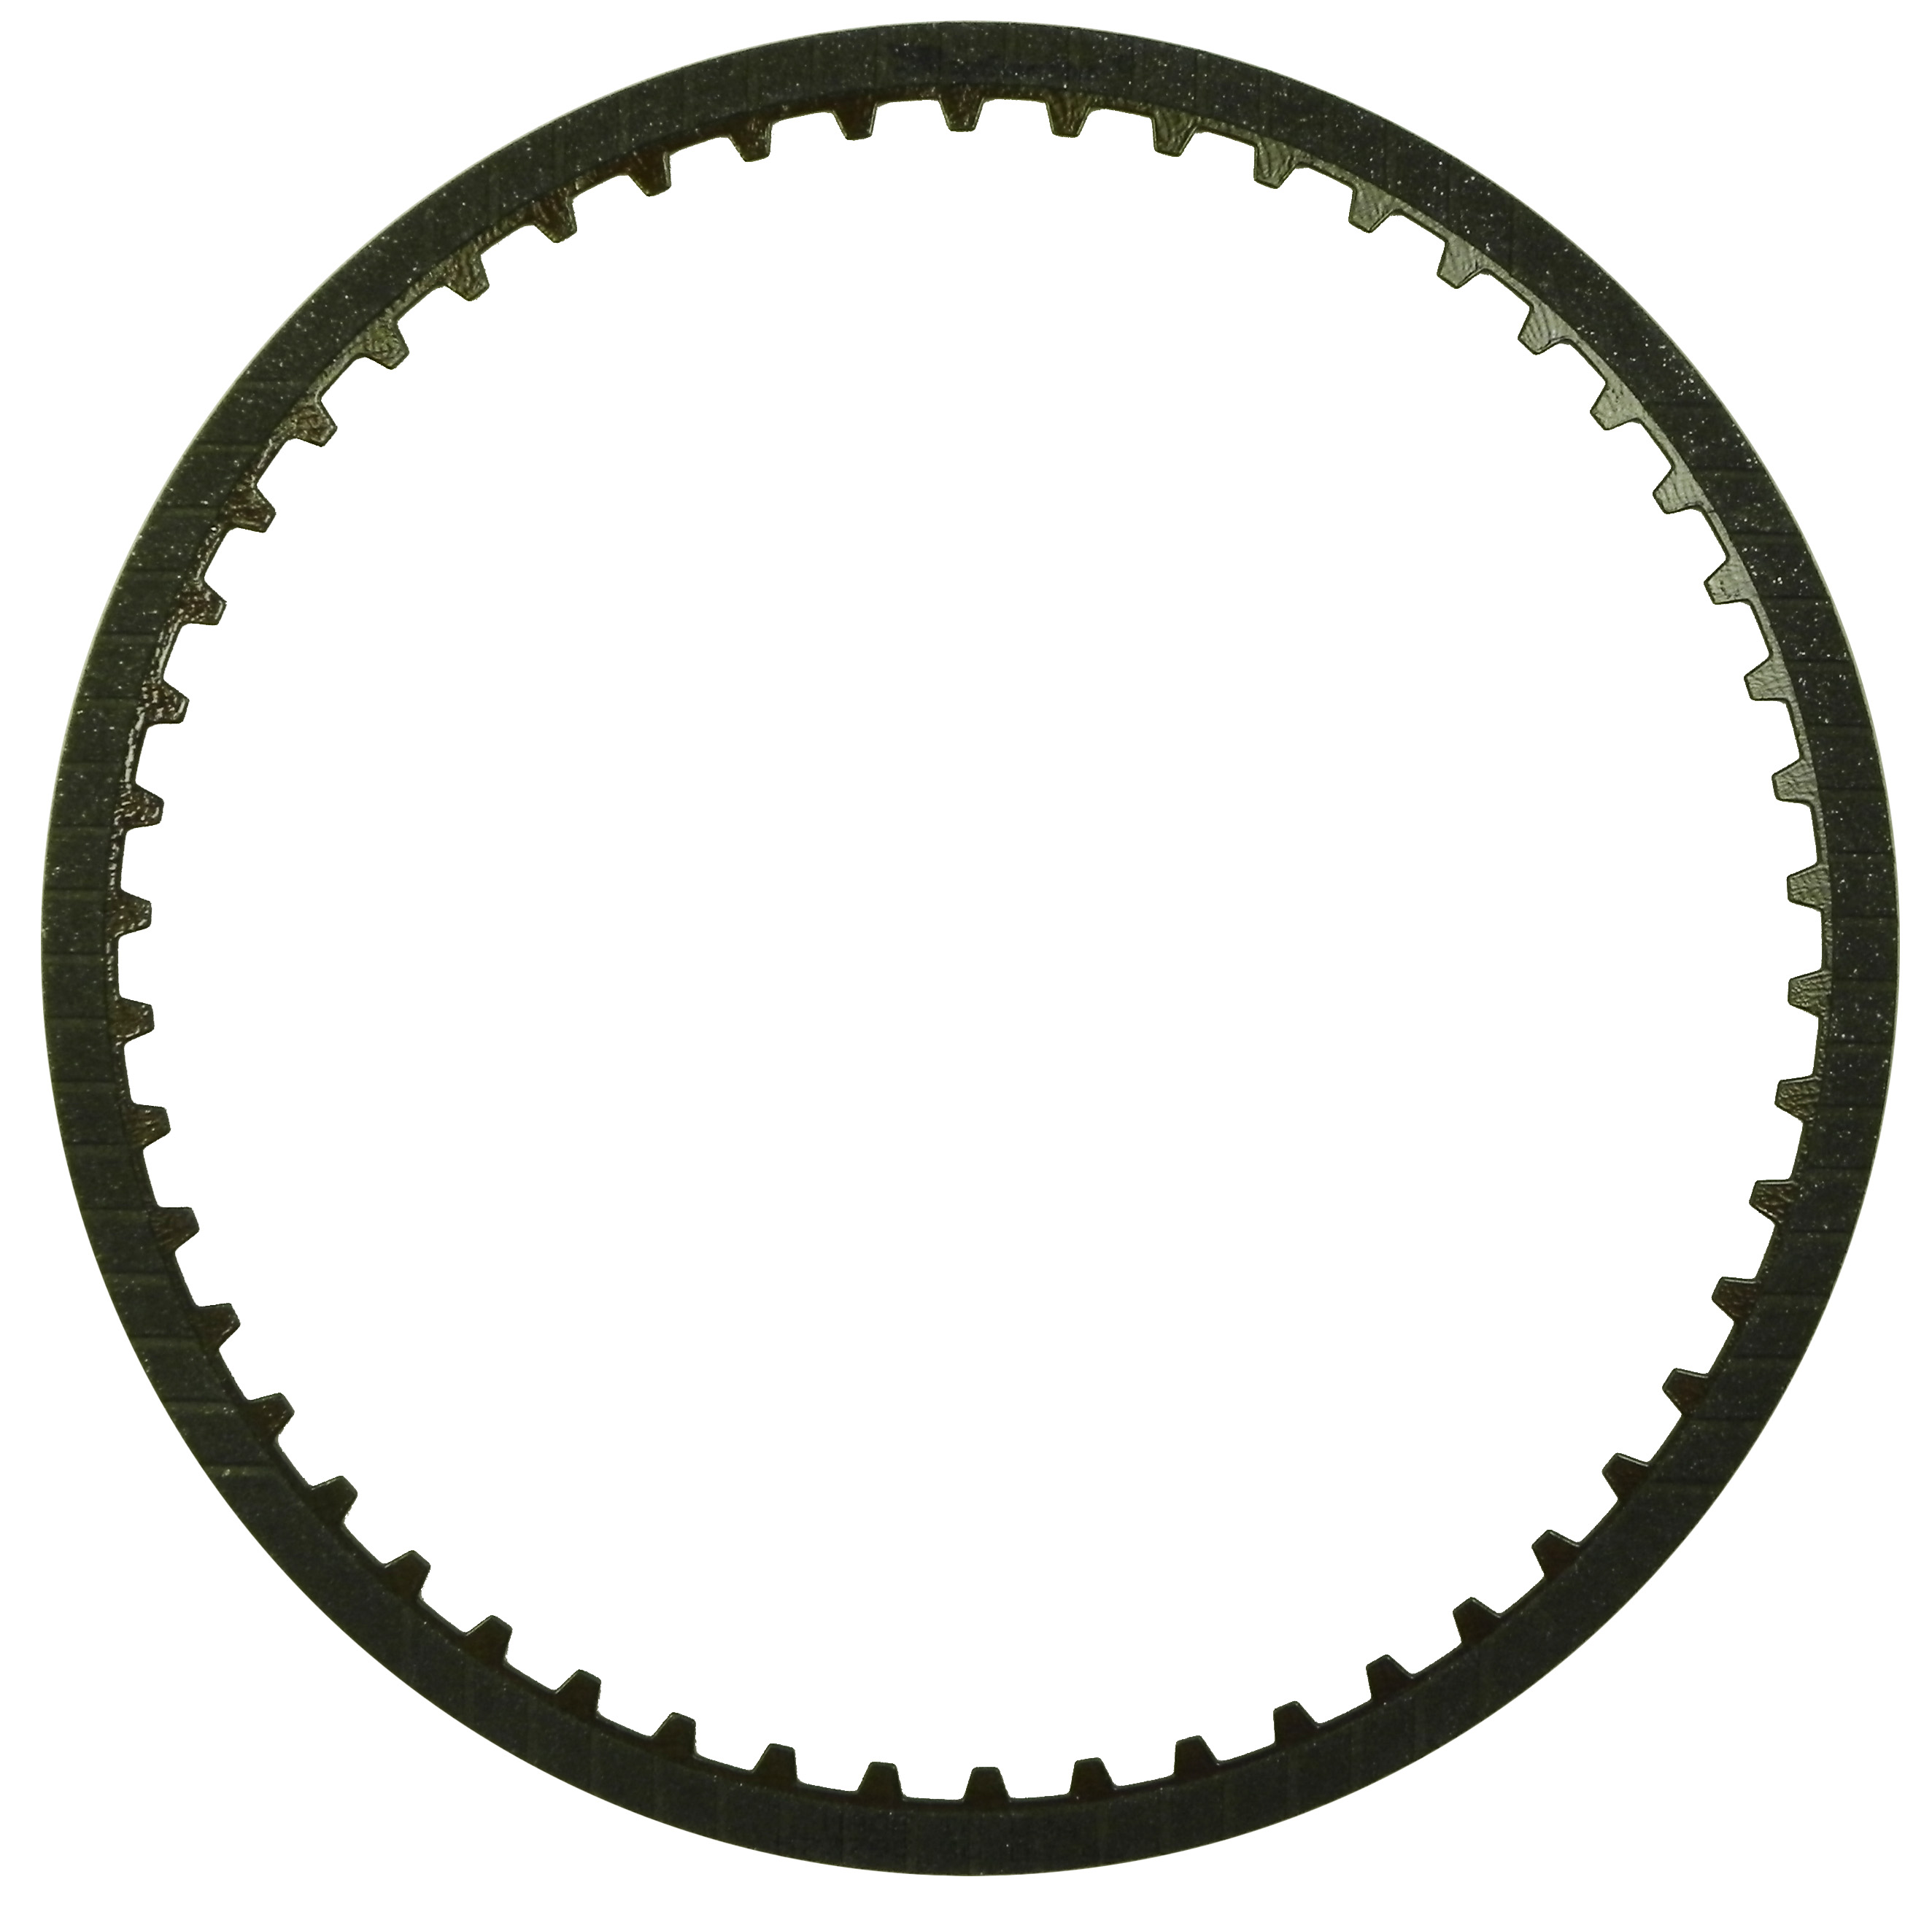 R573795 | 1988-2002 Friction Clutch Plate Graphitic Forward Graphitic (Infiniti, Twin Turbo)